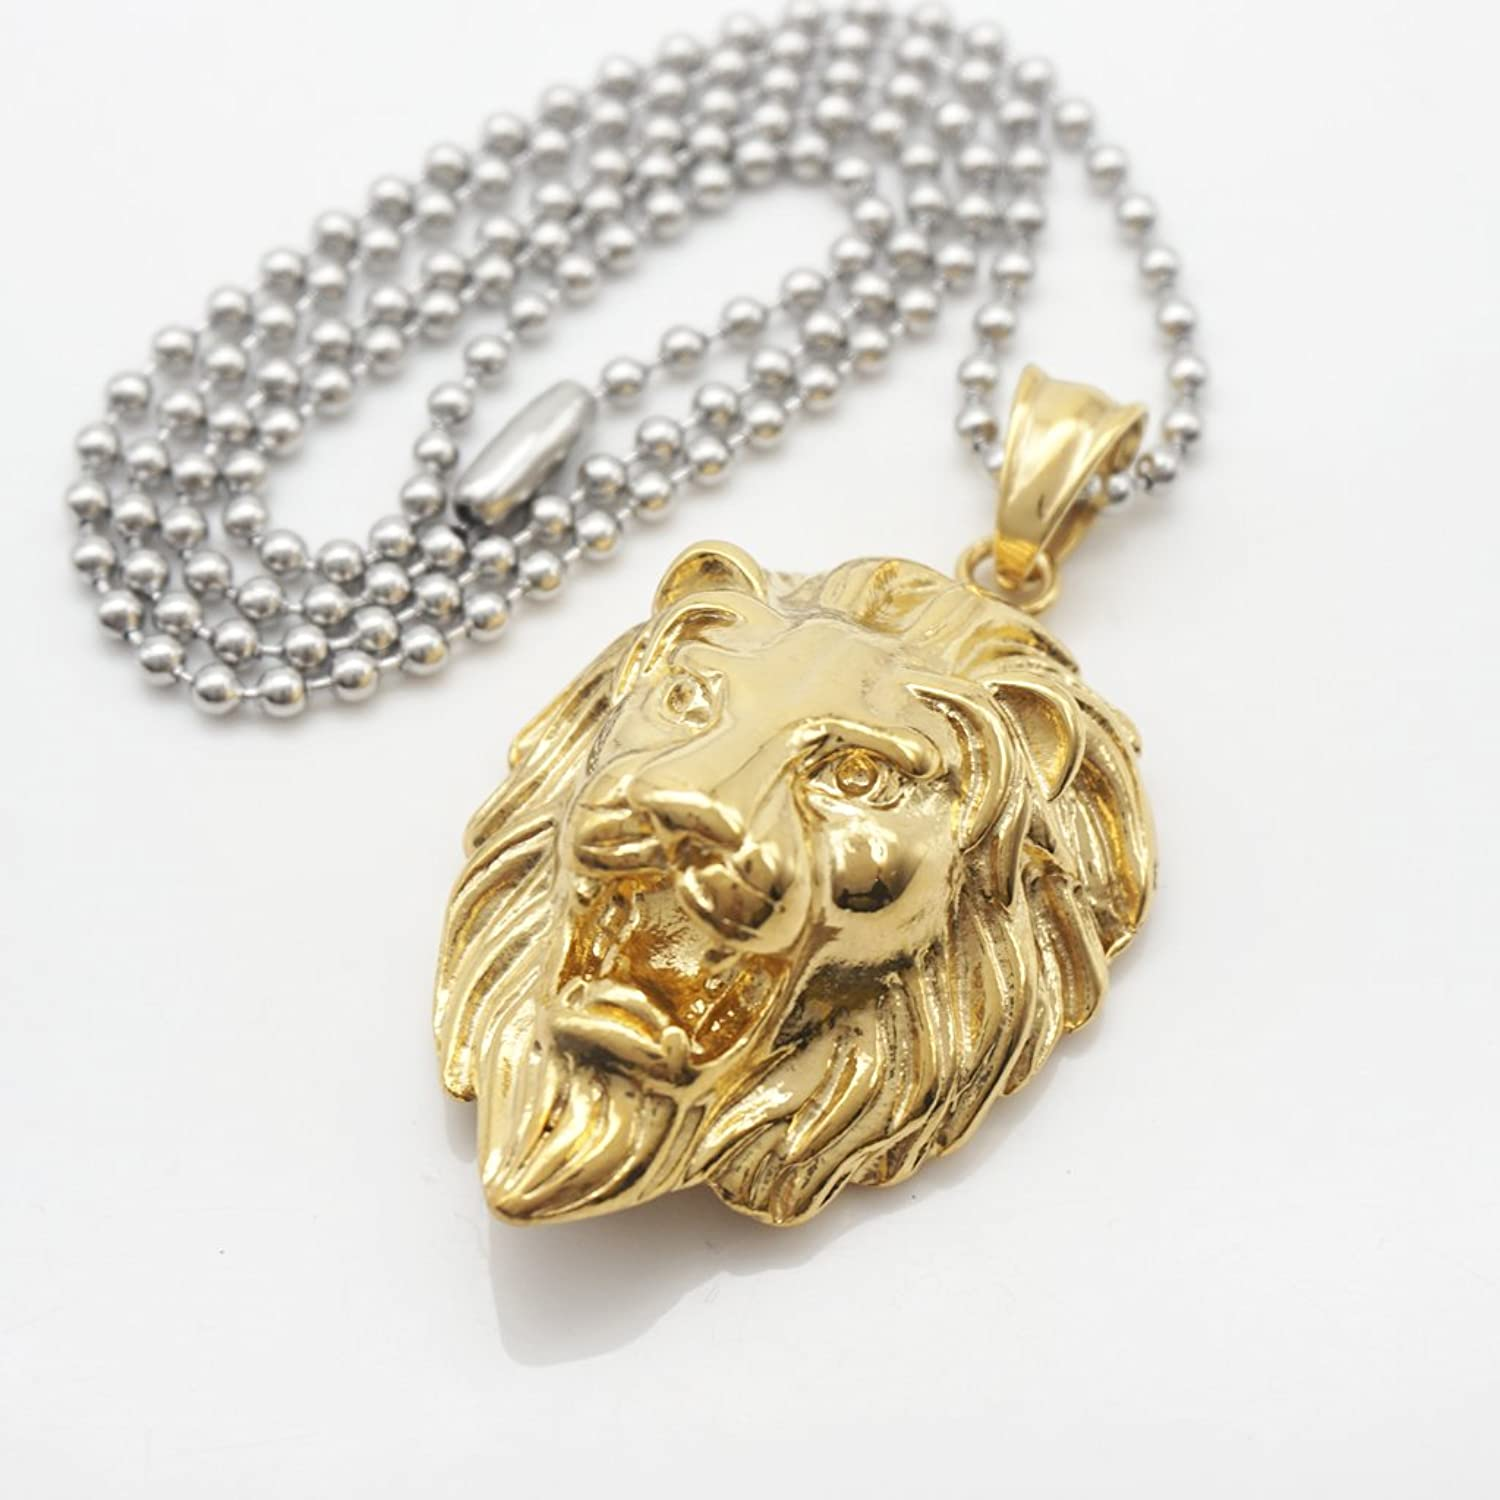 pendant l tags out lion product elephant gift global cut and pendants collection africa vcp stamp categories jewellery made south coin sku in vintage necklaces a